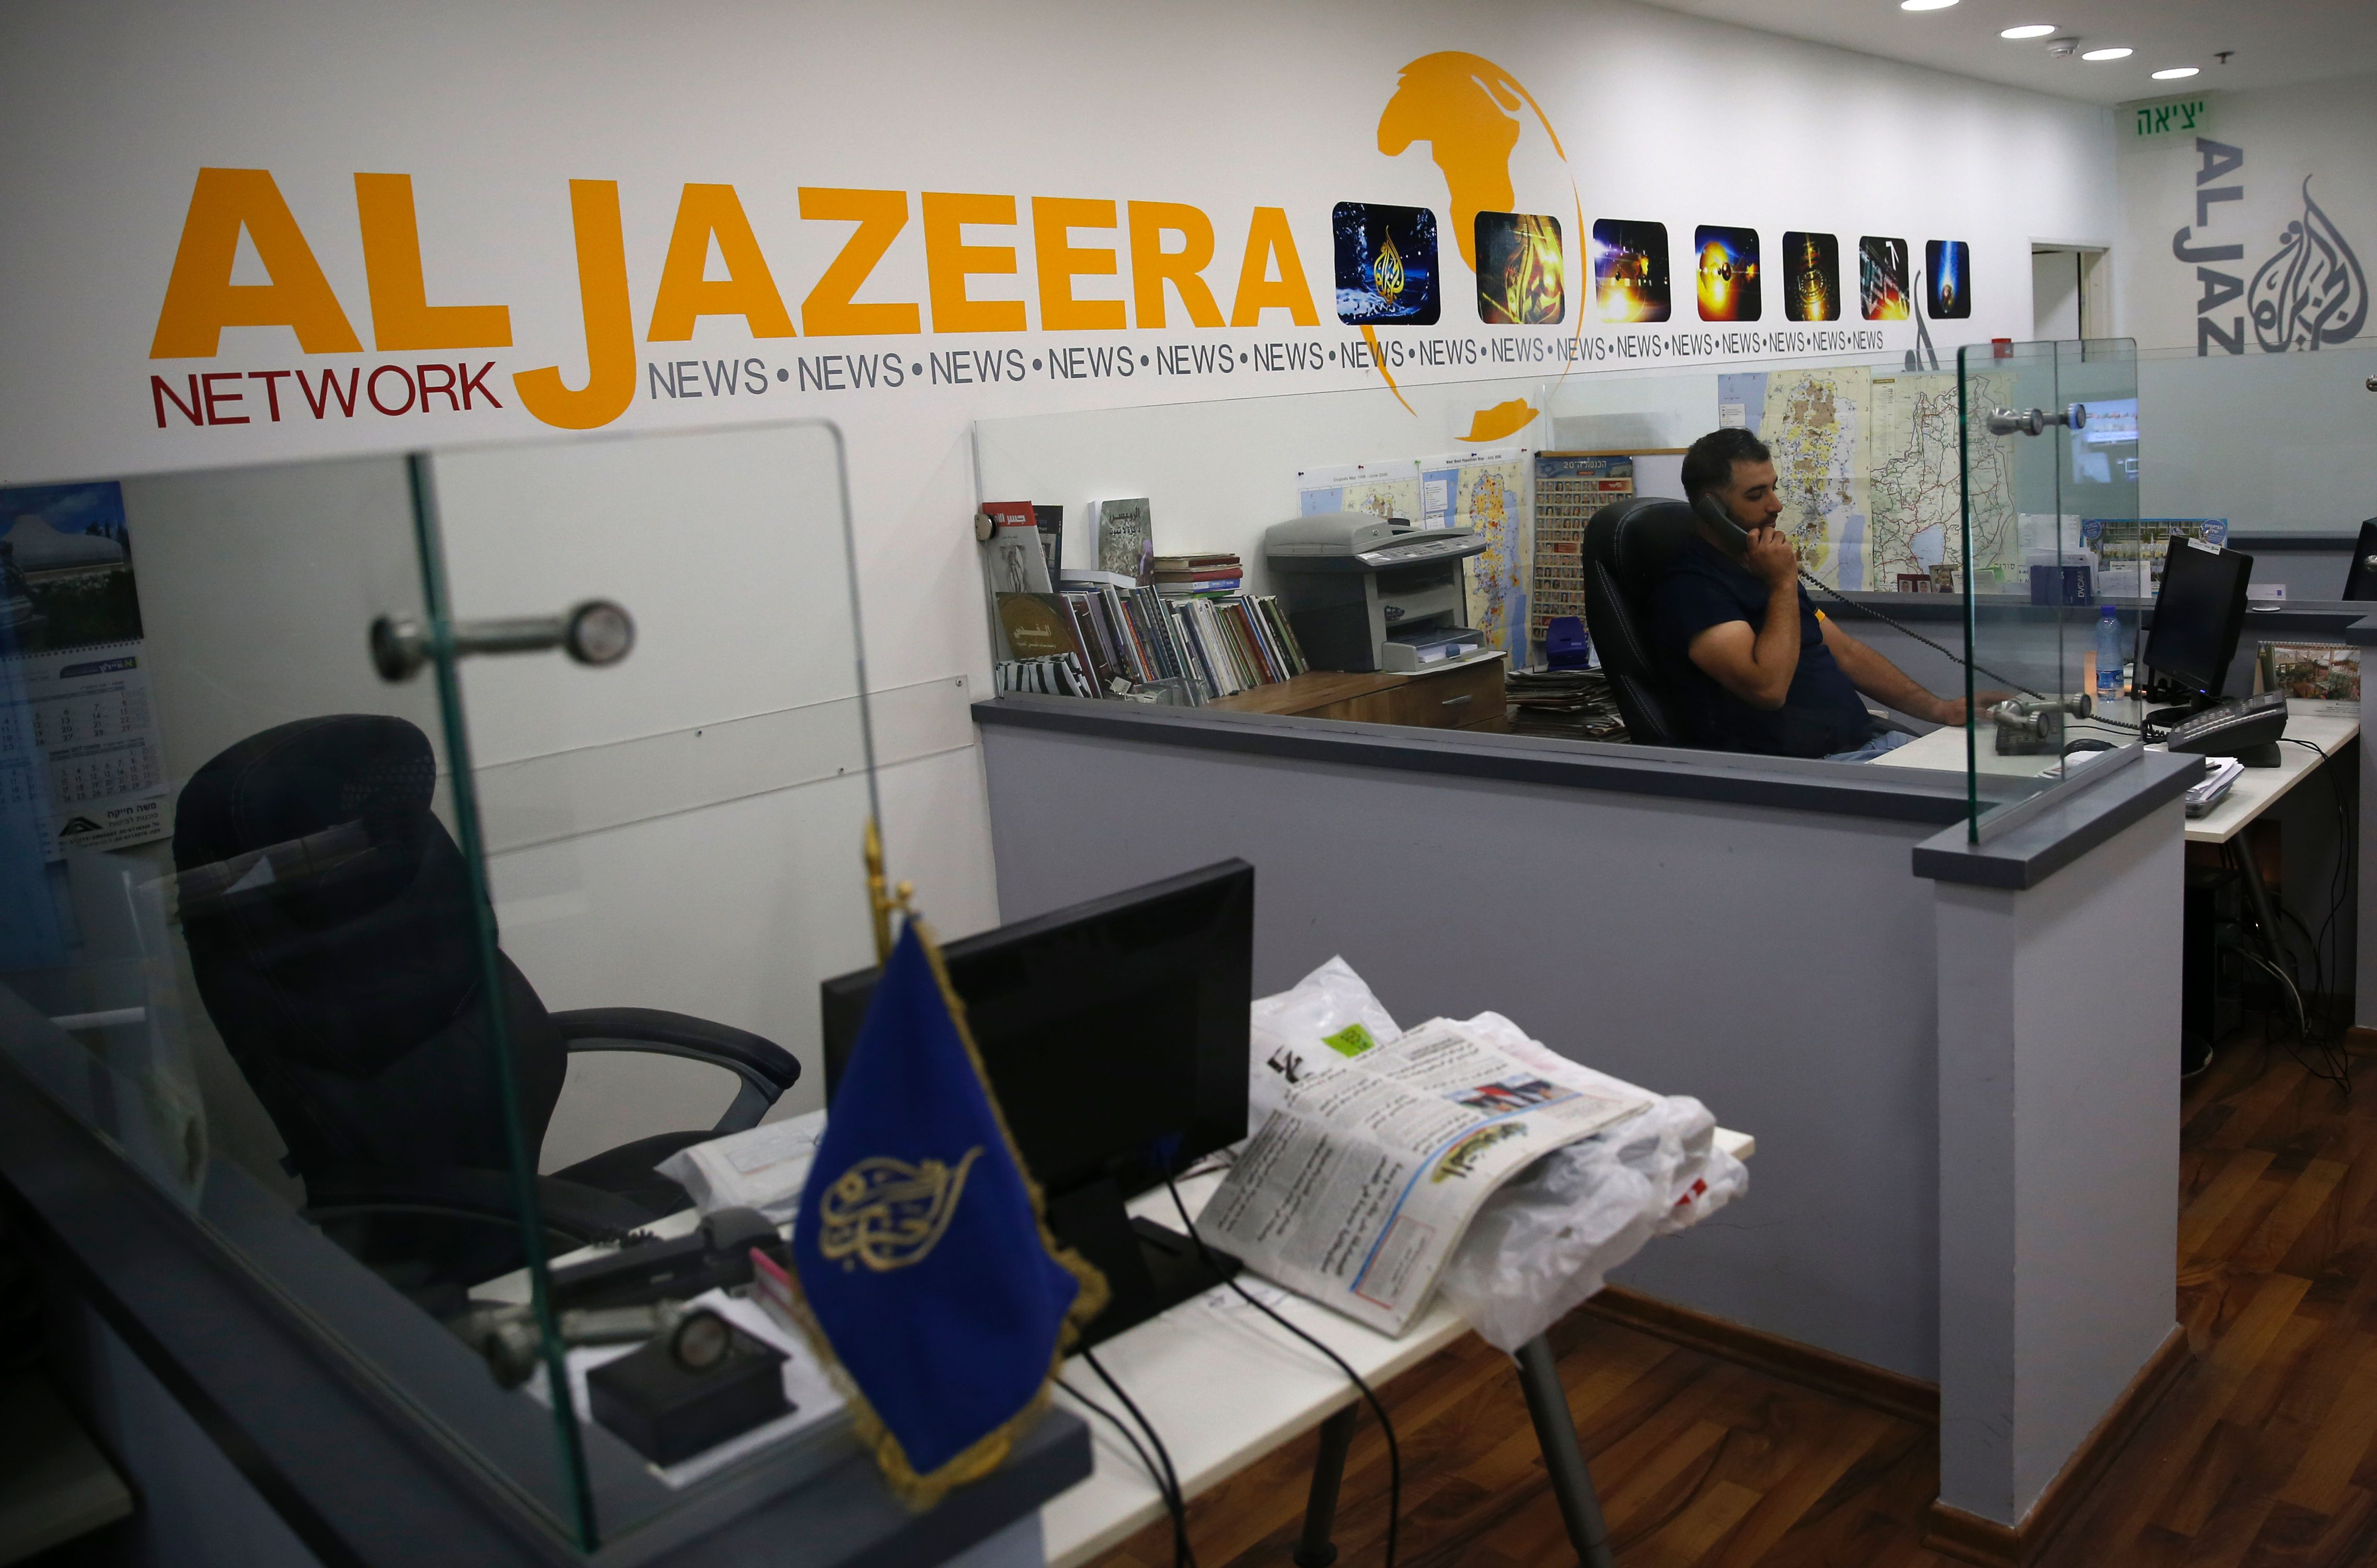 """A man answers the phone in front of a wall with """"Al Jazeera"""" painted on it."""